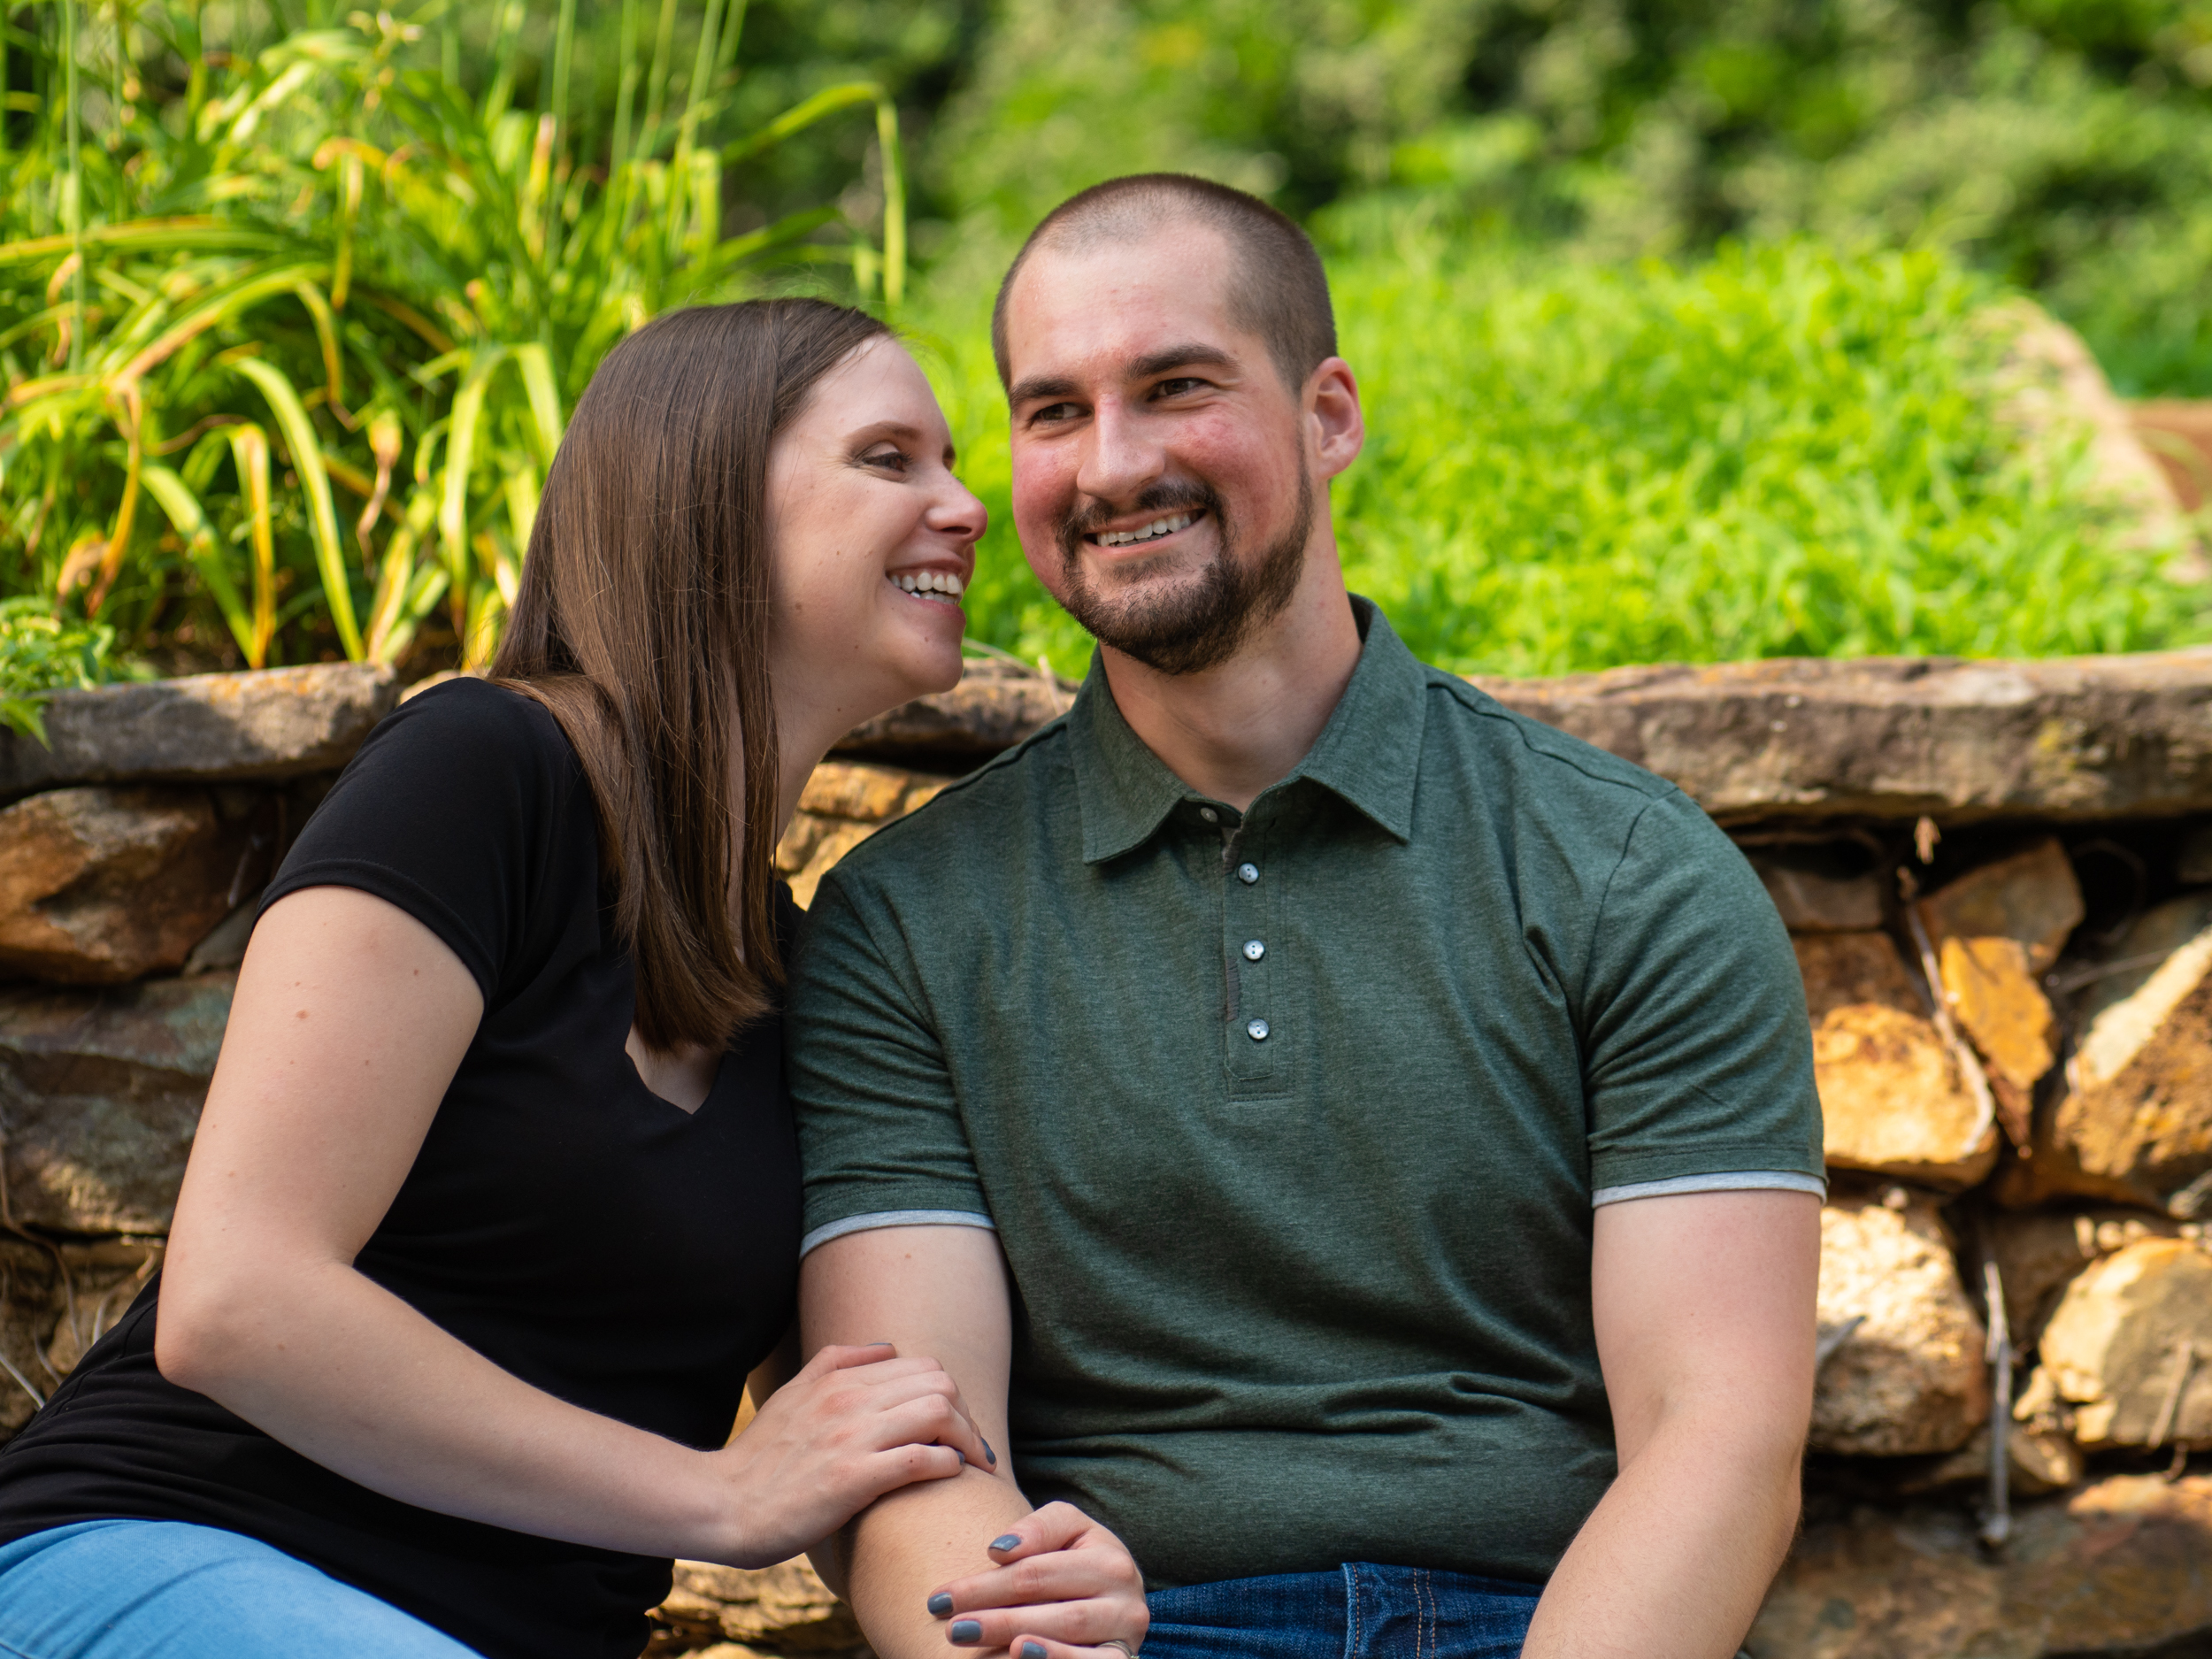 saxapahaw-brewery-river-chapel hill-carrboro-engagement-portraits-wedding-emily-brad-30176.jpg